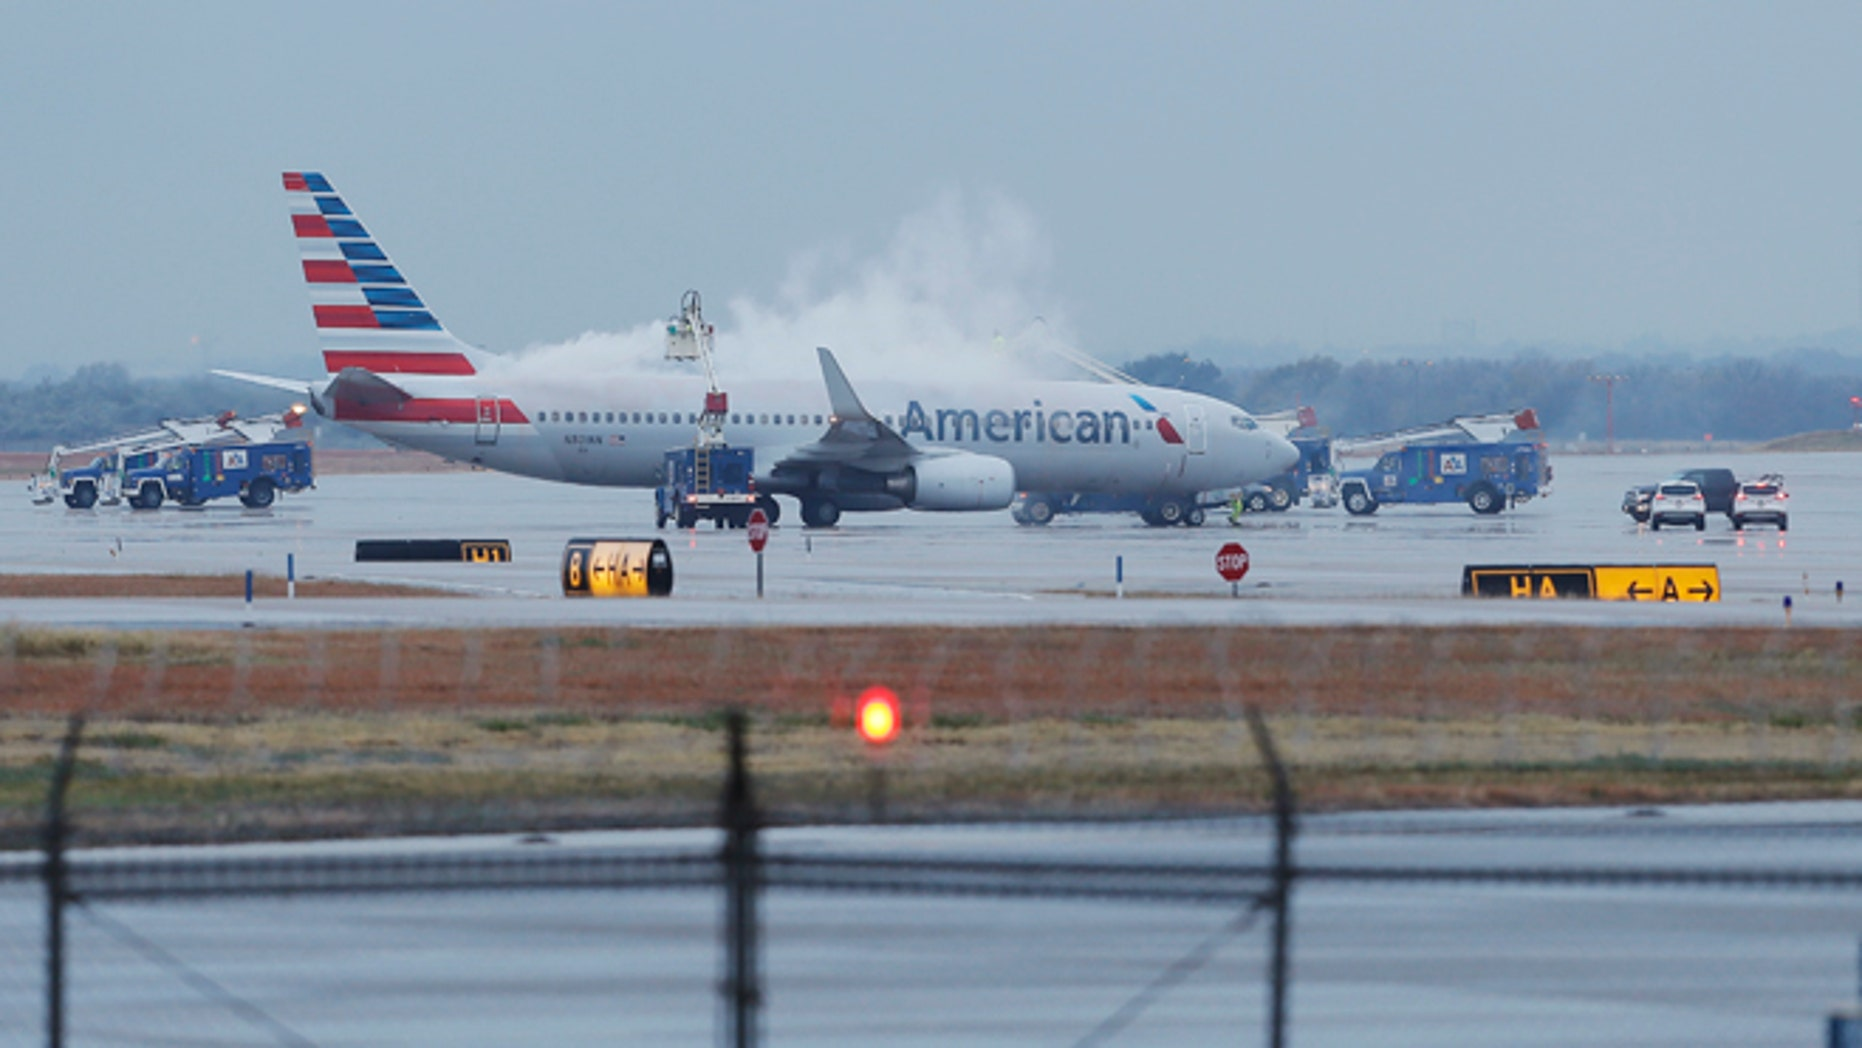 Crews spray deicing solution onto an American Airlines 737 before departure at Dallas-Fort Worth International airport, Monday, Nov. 25, 2013. Winter weather has caused travel disruptions throughout the area including the cancellation and delays of hundreds of flights. (AP Photo/Brandon Wade)